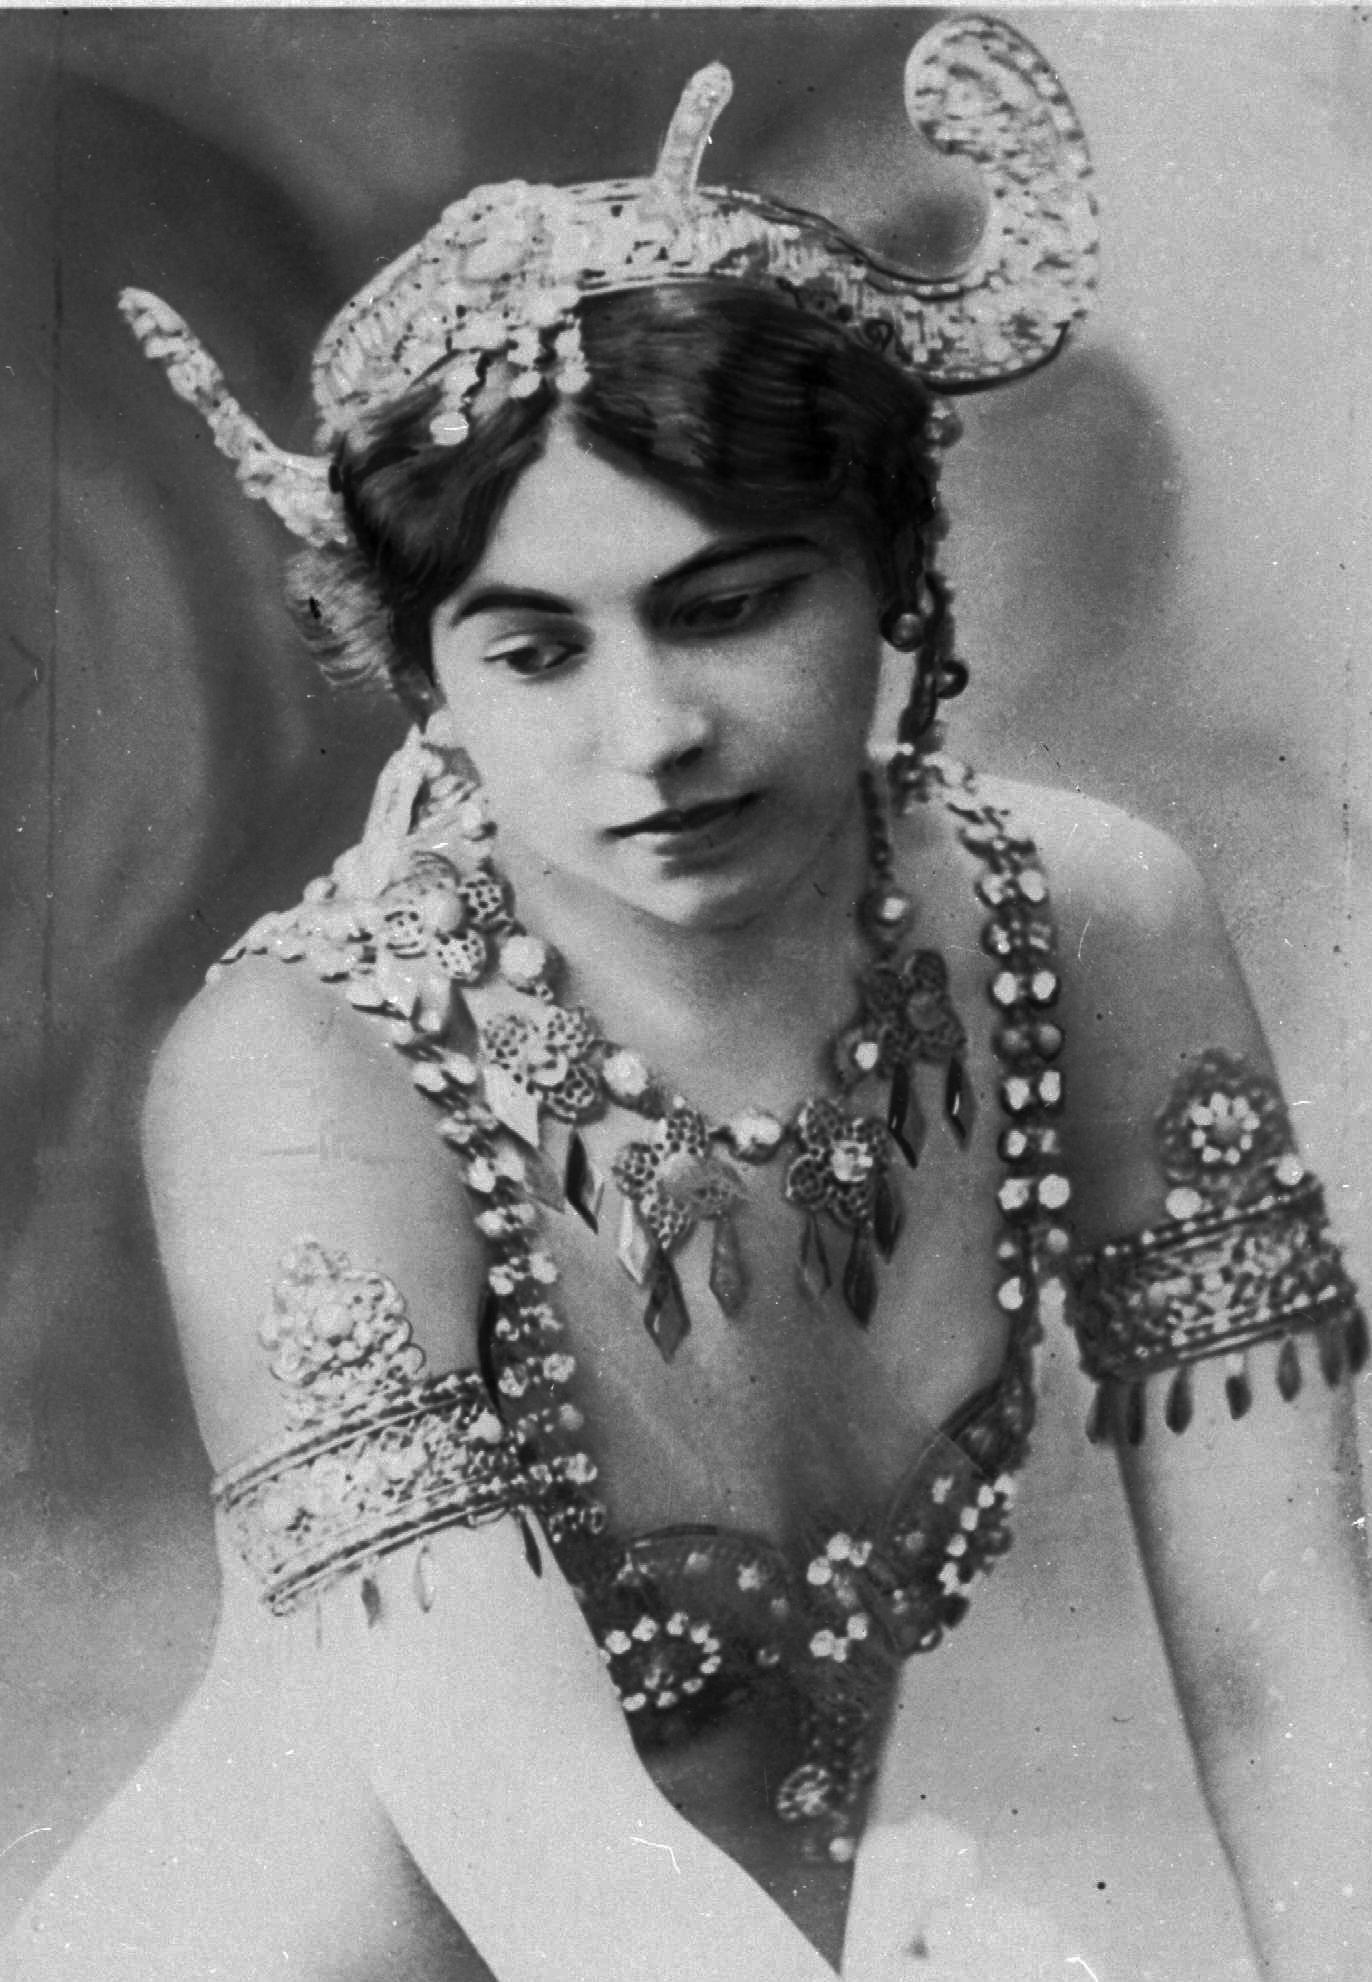 "An undated photo of dancer ""Mata Hari"". Born Margaretha Zelle who was executed during World War I for being a spy. A century ago, on Oct. 15, 1917, an exotic dancer named Mata Hari was executed by a French firing squad, condemned as a sultry Dutch double agent who supposedly led tens of thousands of soldiers to their death during World War I. (AP Photo/Virginia Mayo)"